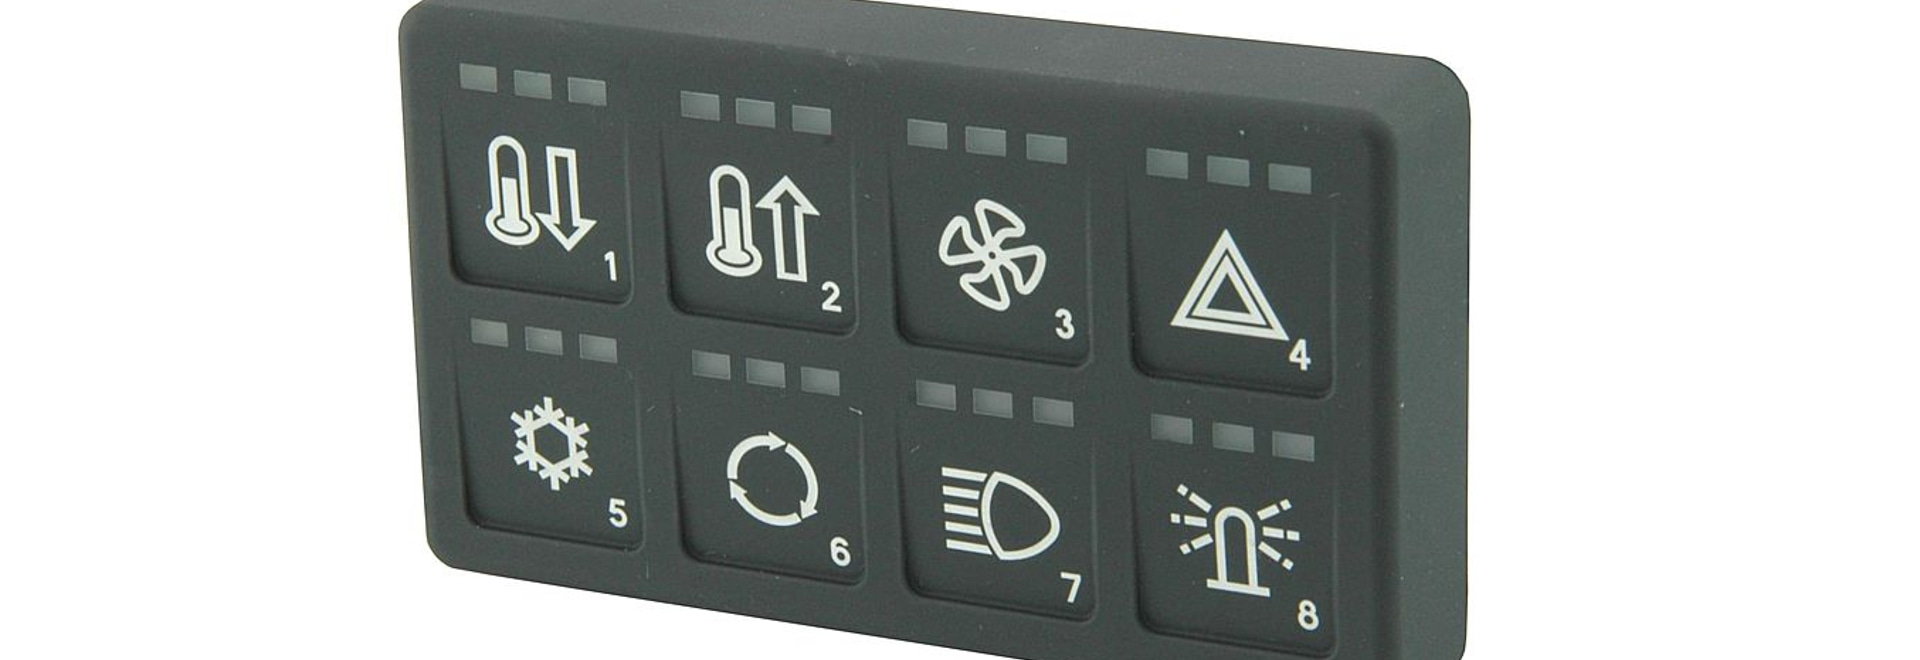 Keypad with can & modbus interface